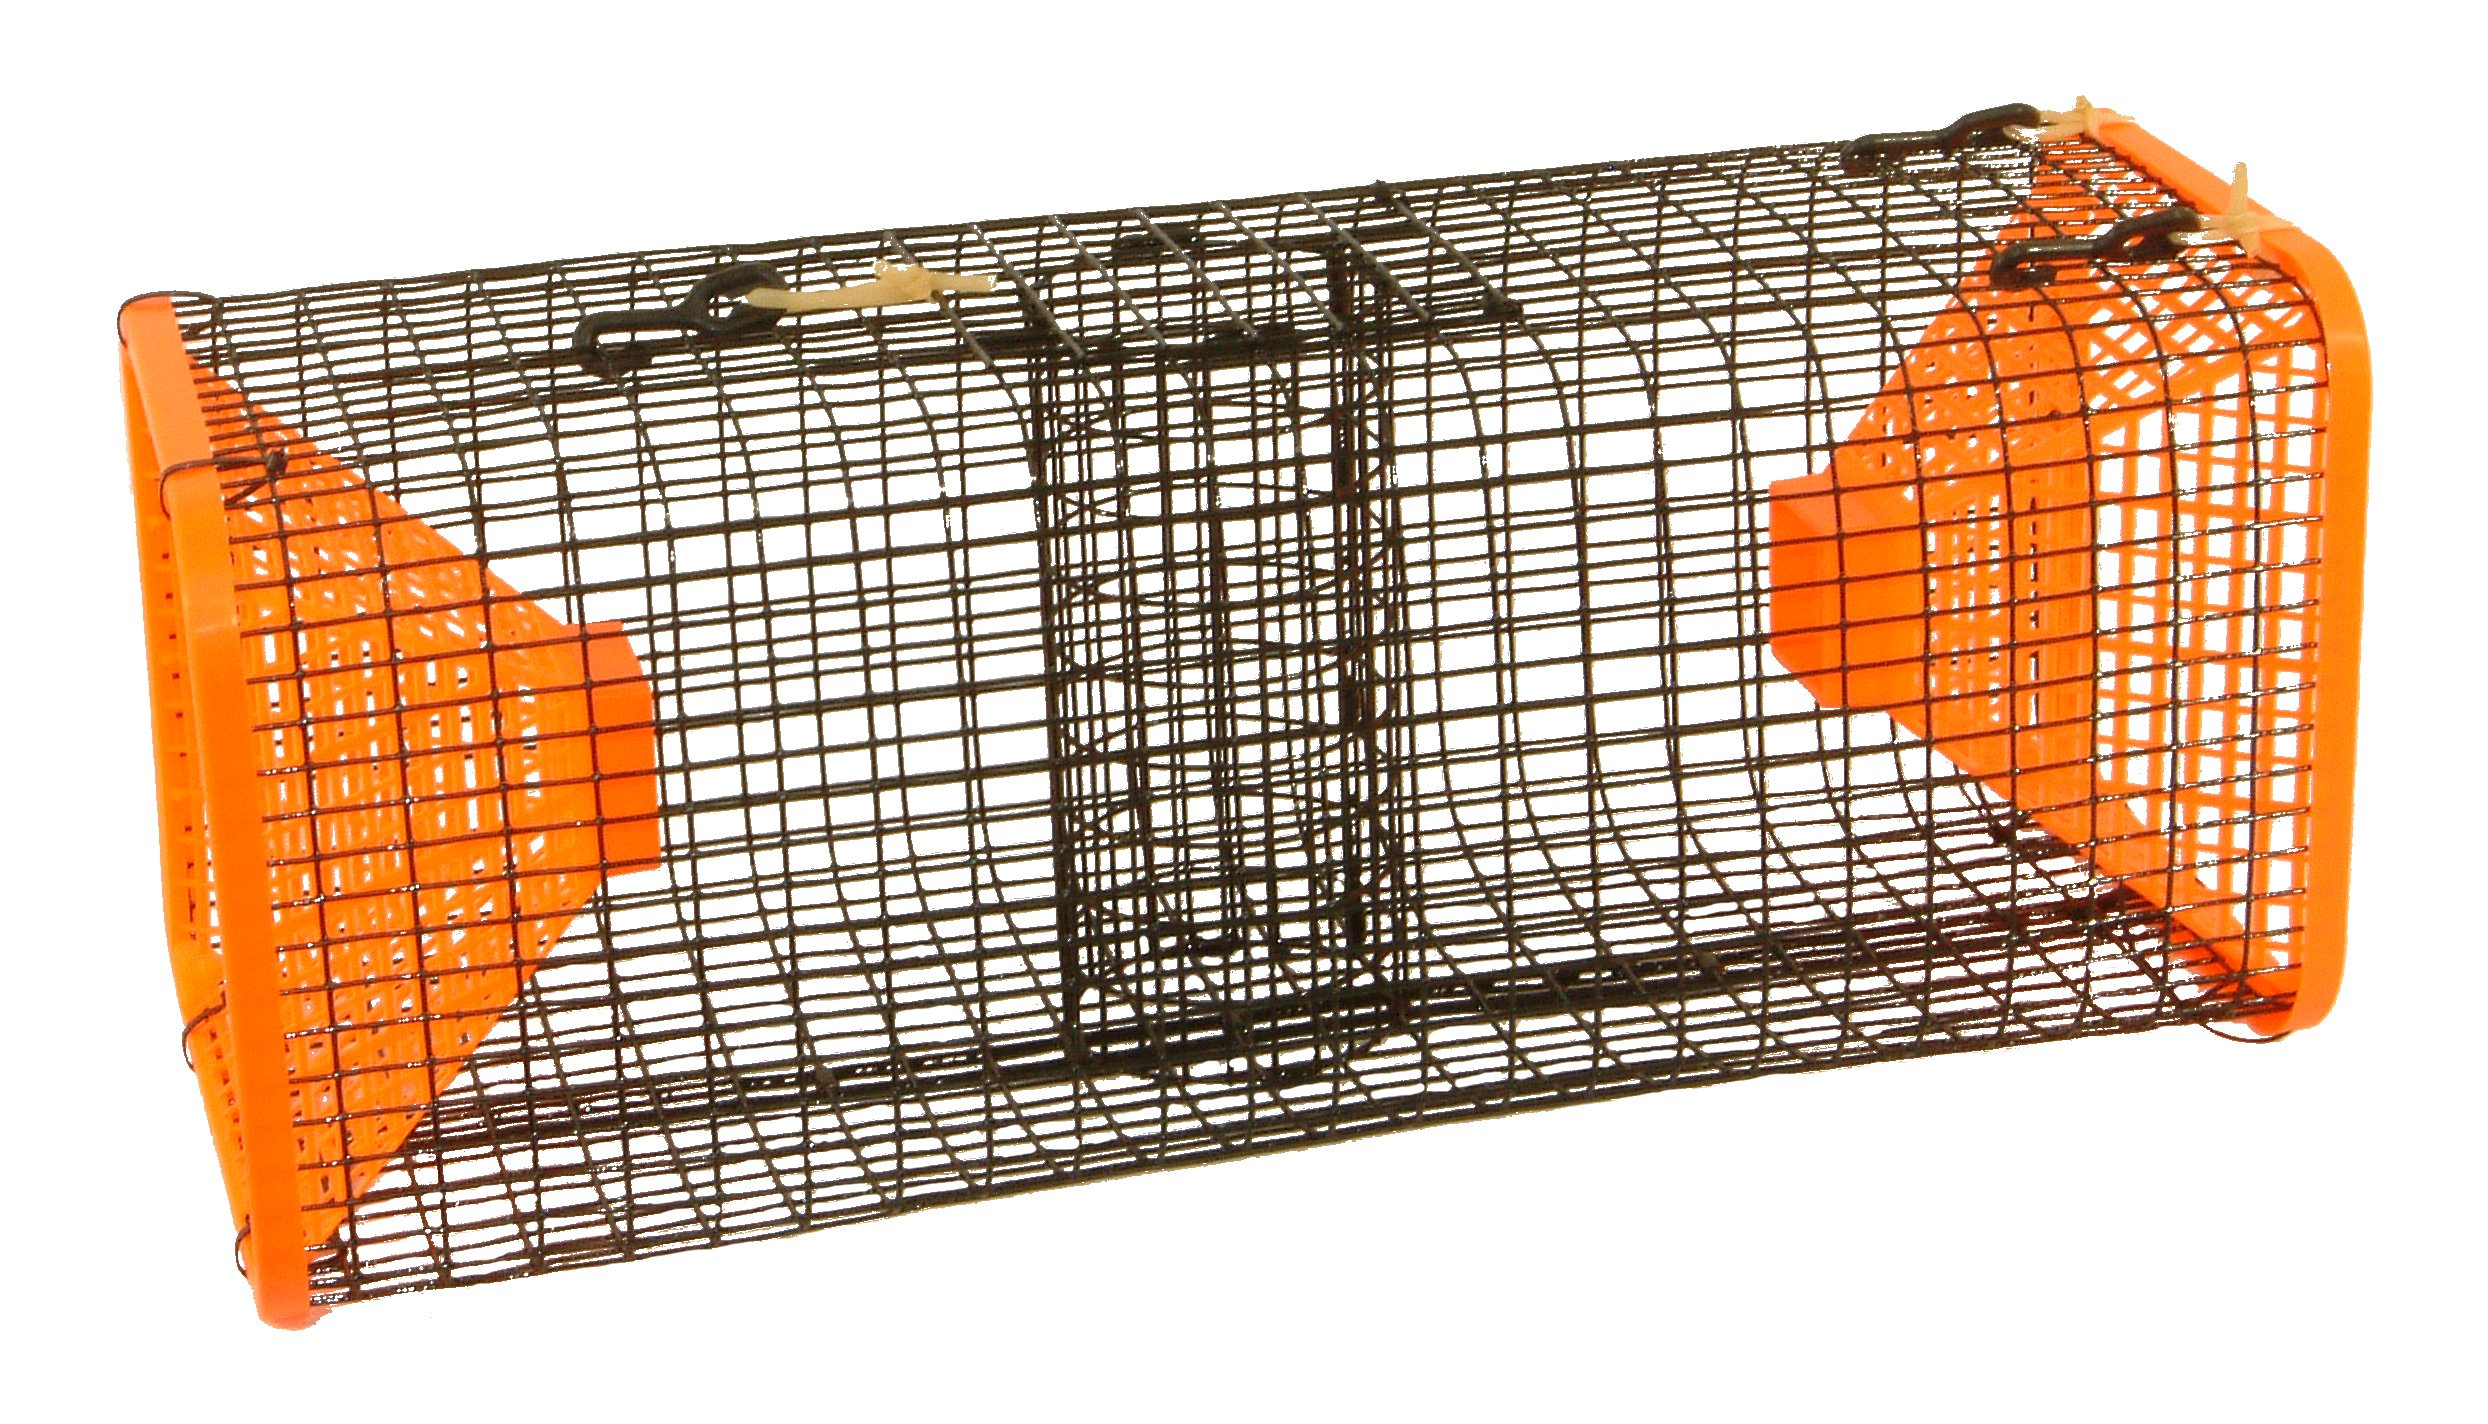 Protoco 9 x 9-Inch Crawfish Trap